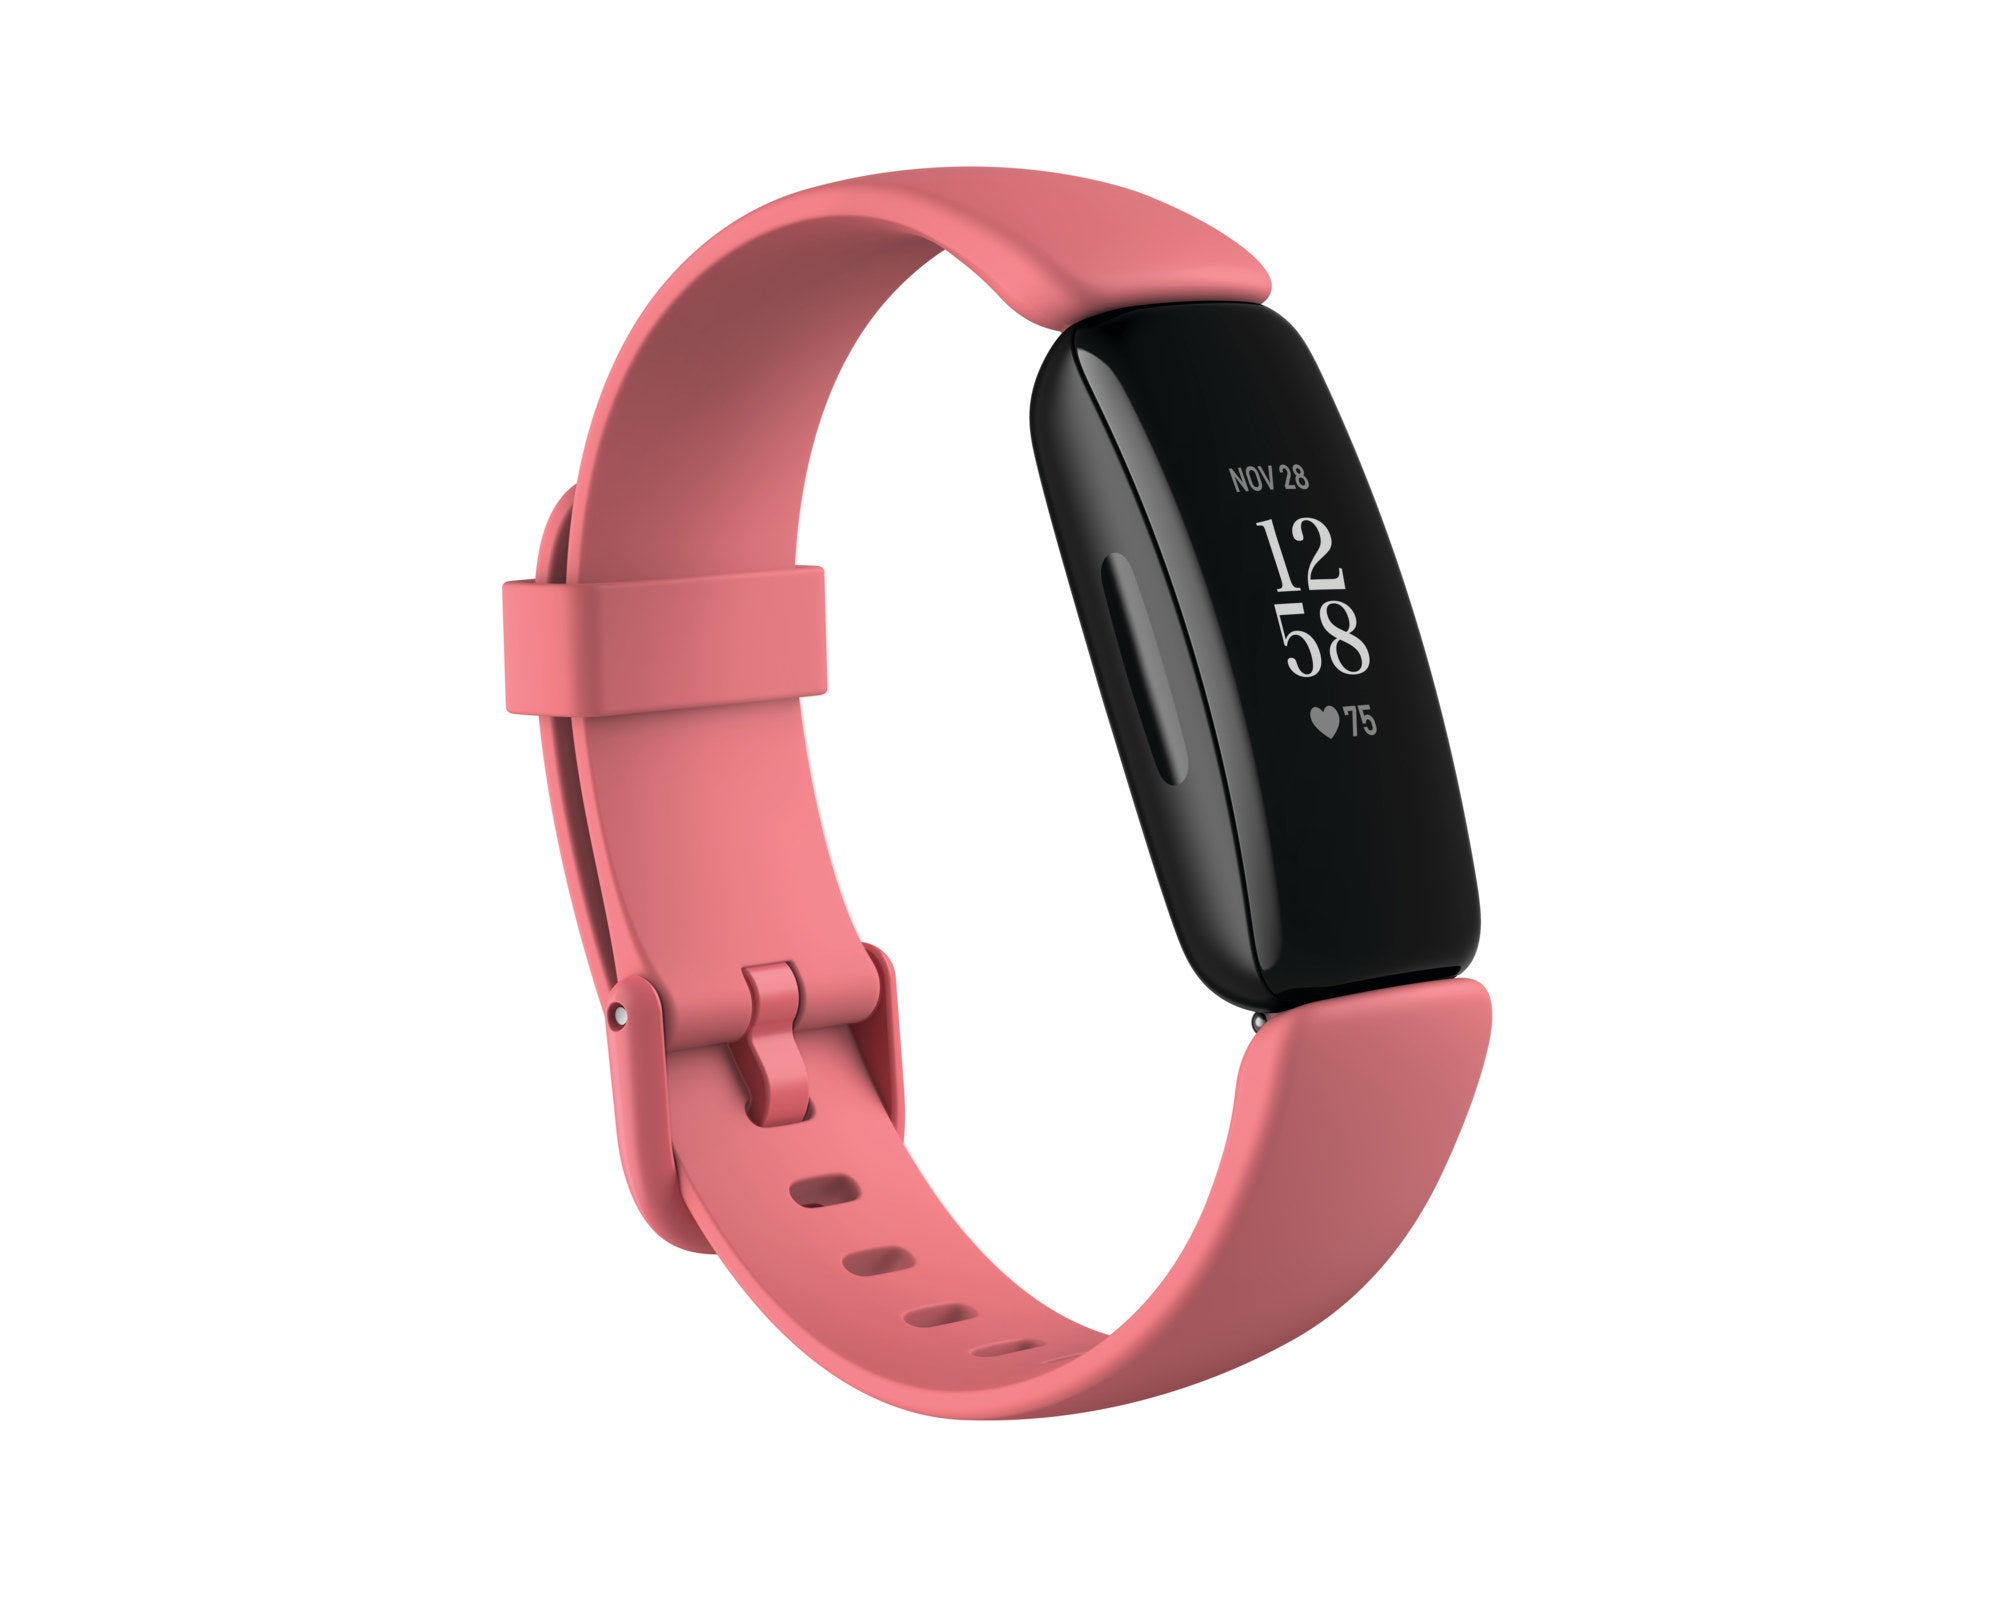 fitbit fitness tracker with a pink band